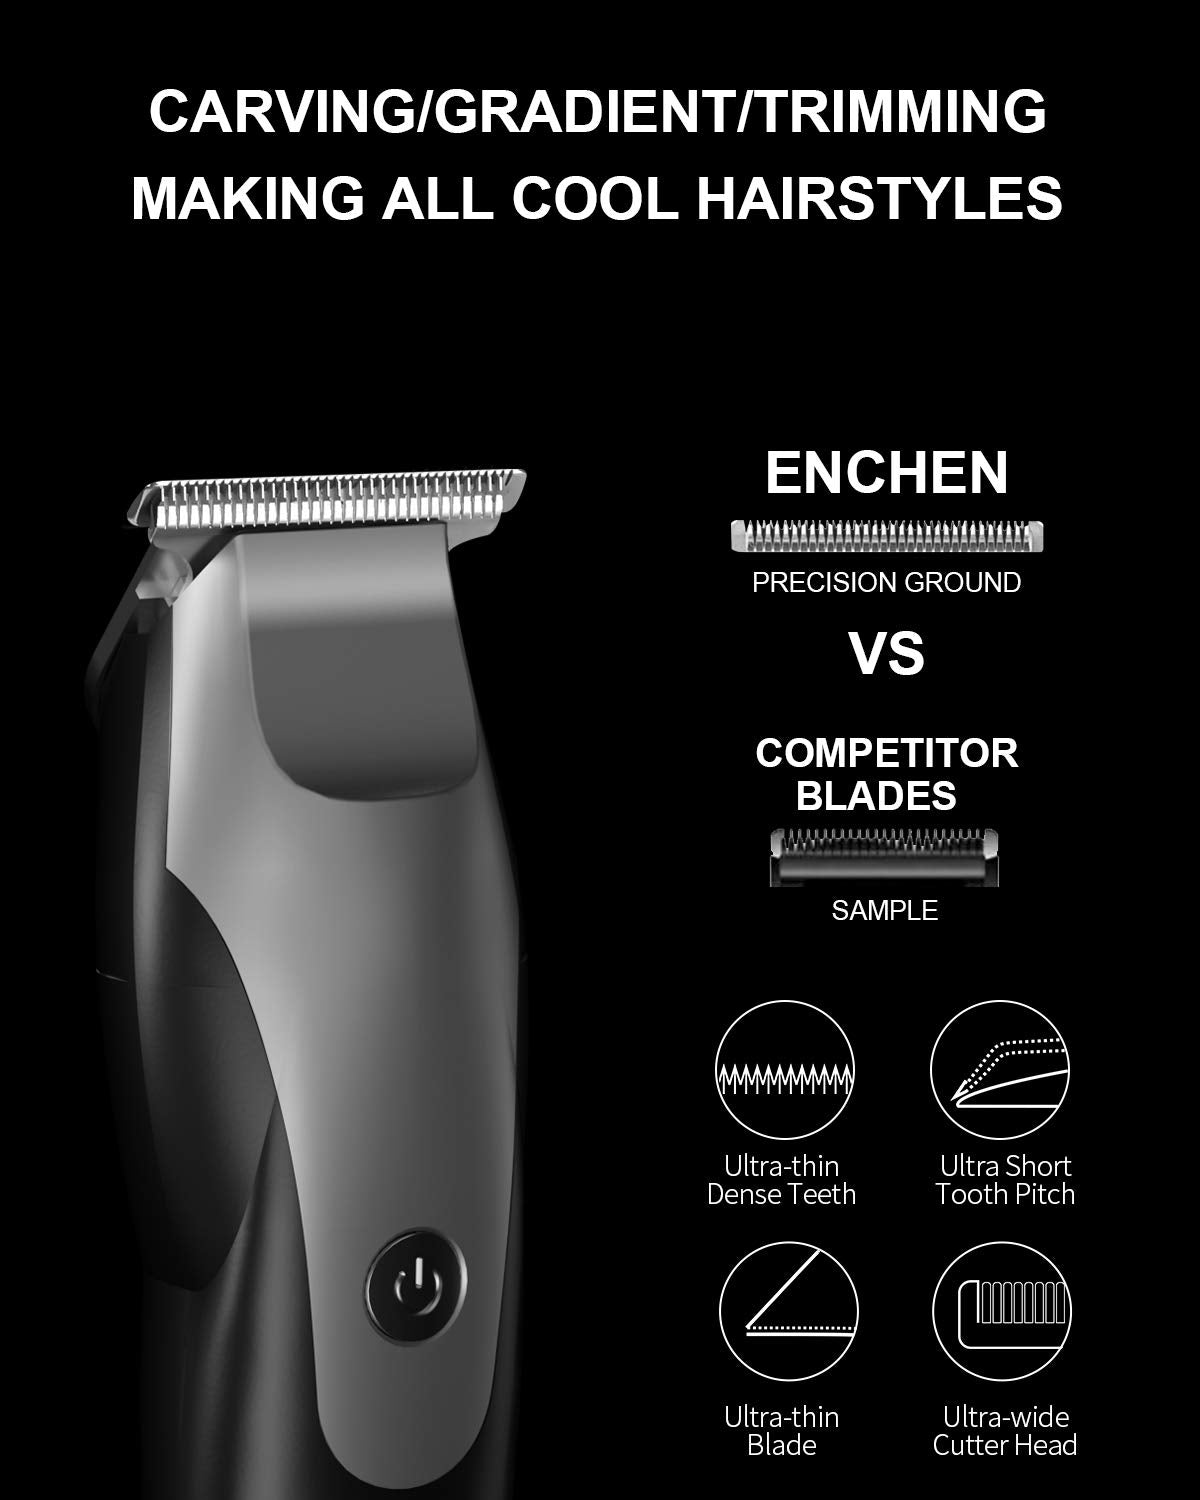 Hair Clippers Beard Trimmer for Men, Professional Mens Hair Trimmer with T Blade Close Cutting for Haircut Kit, Cordless & Corded Rechargeable Electric Trimmer for Men Kids Home Travel